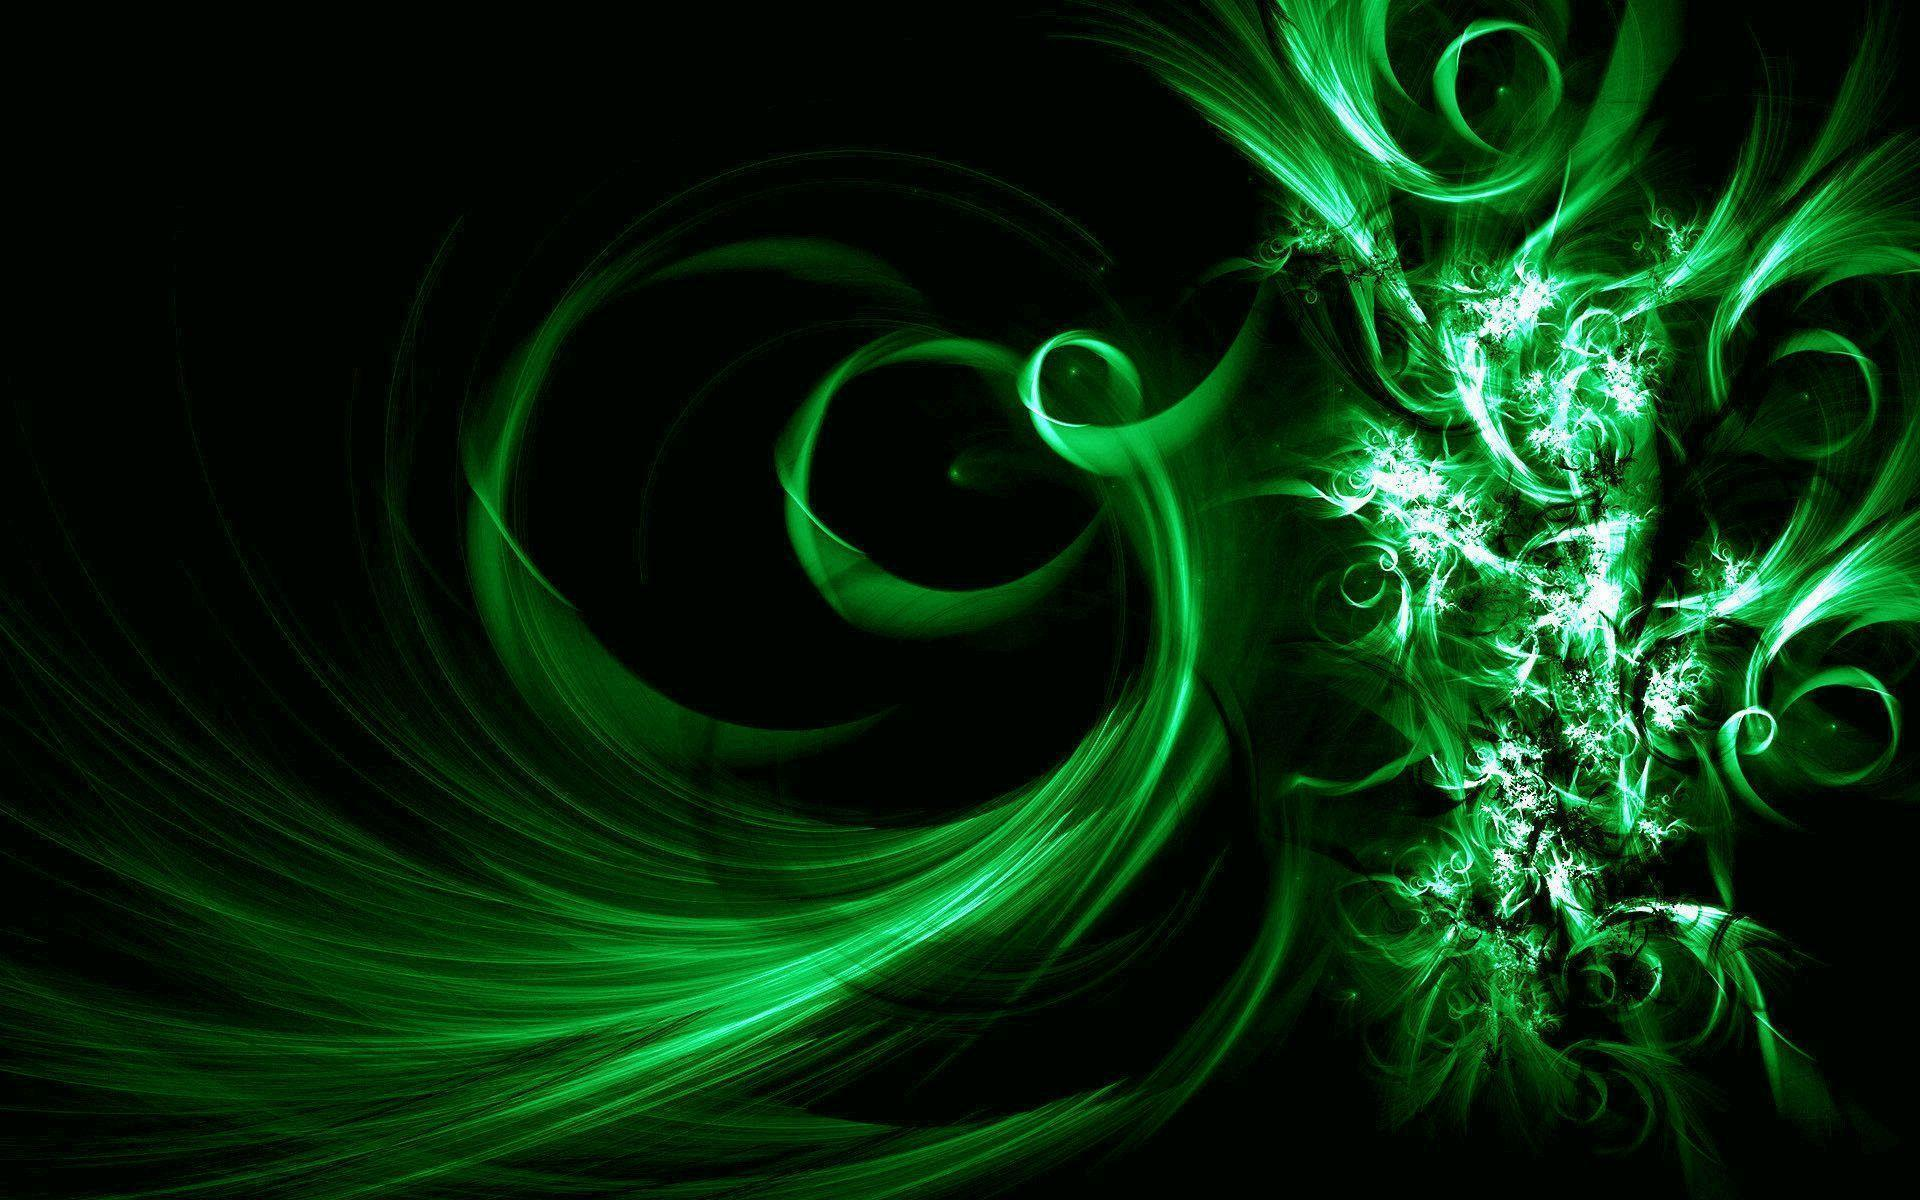 Black And Green Backgrounds Wallpaper Cave